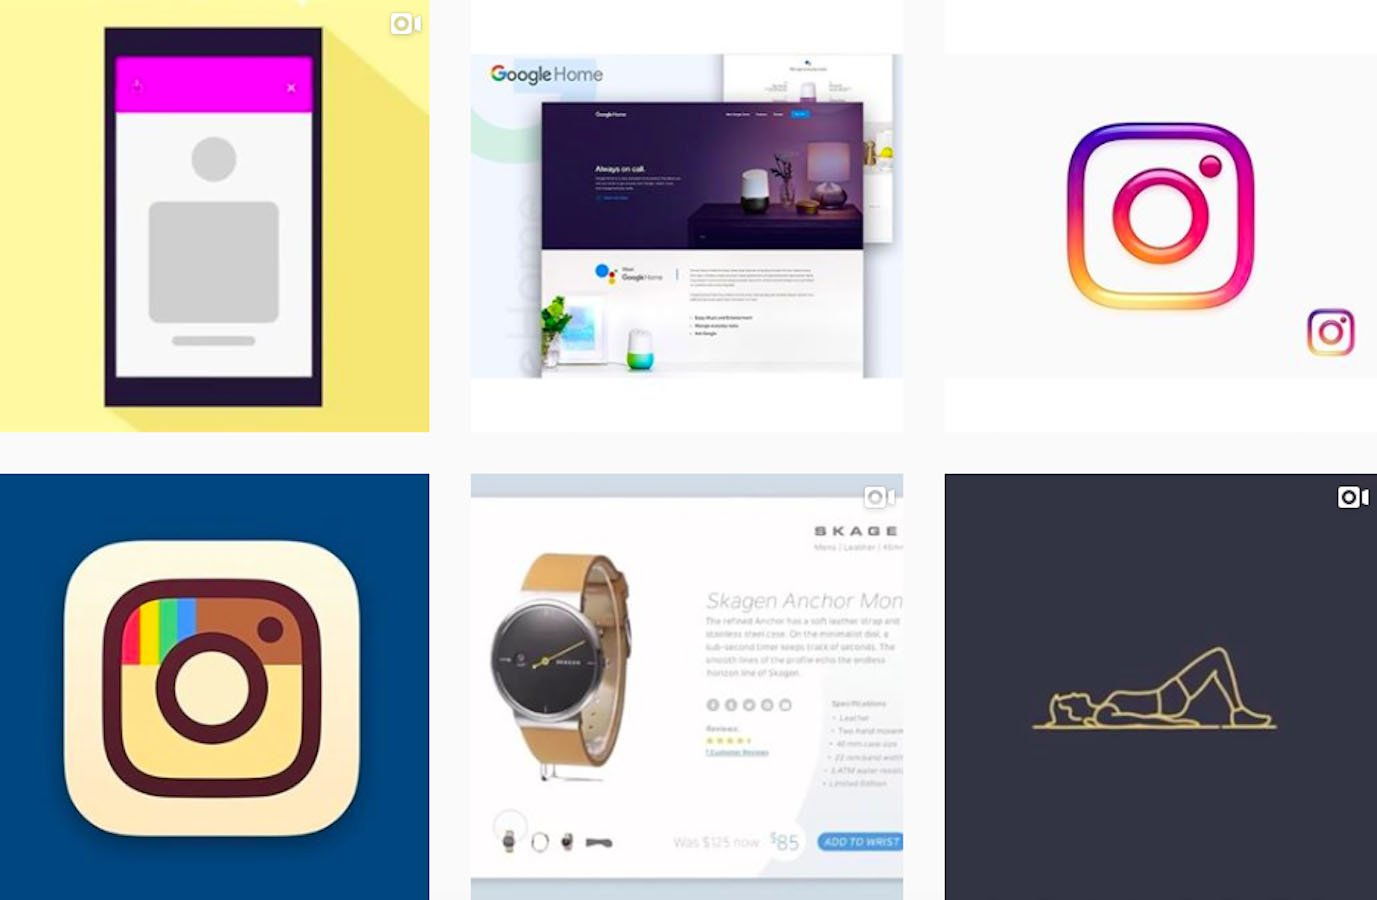 Web Design Inspiration: 110+ Accounts On Instagram and 10+ Best UX & Web Design Books in 2020 - uxdesigns